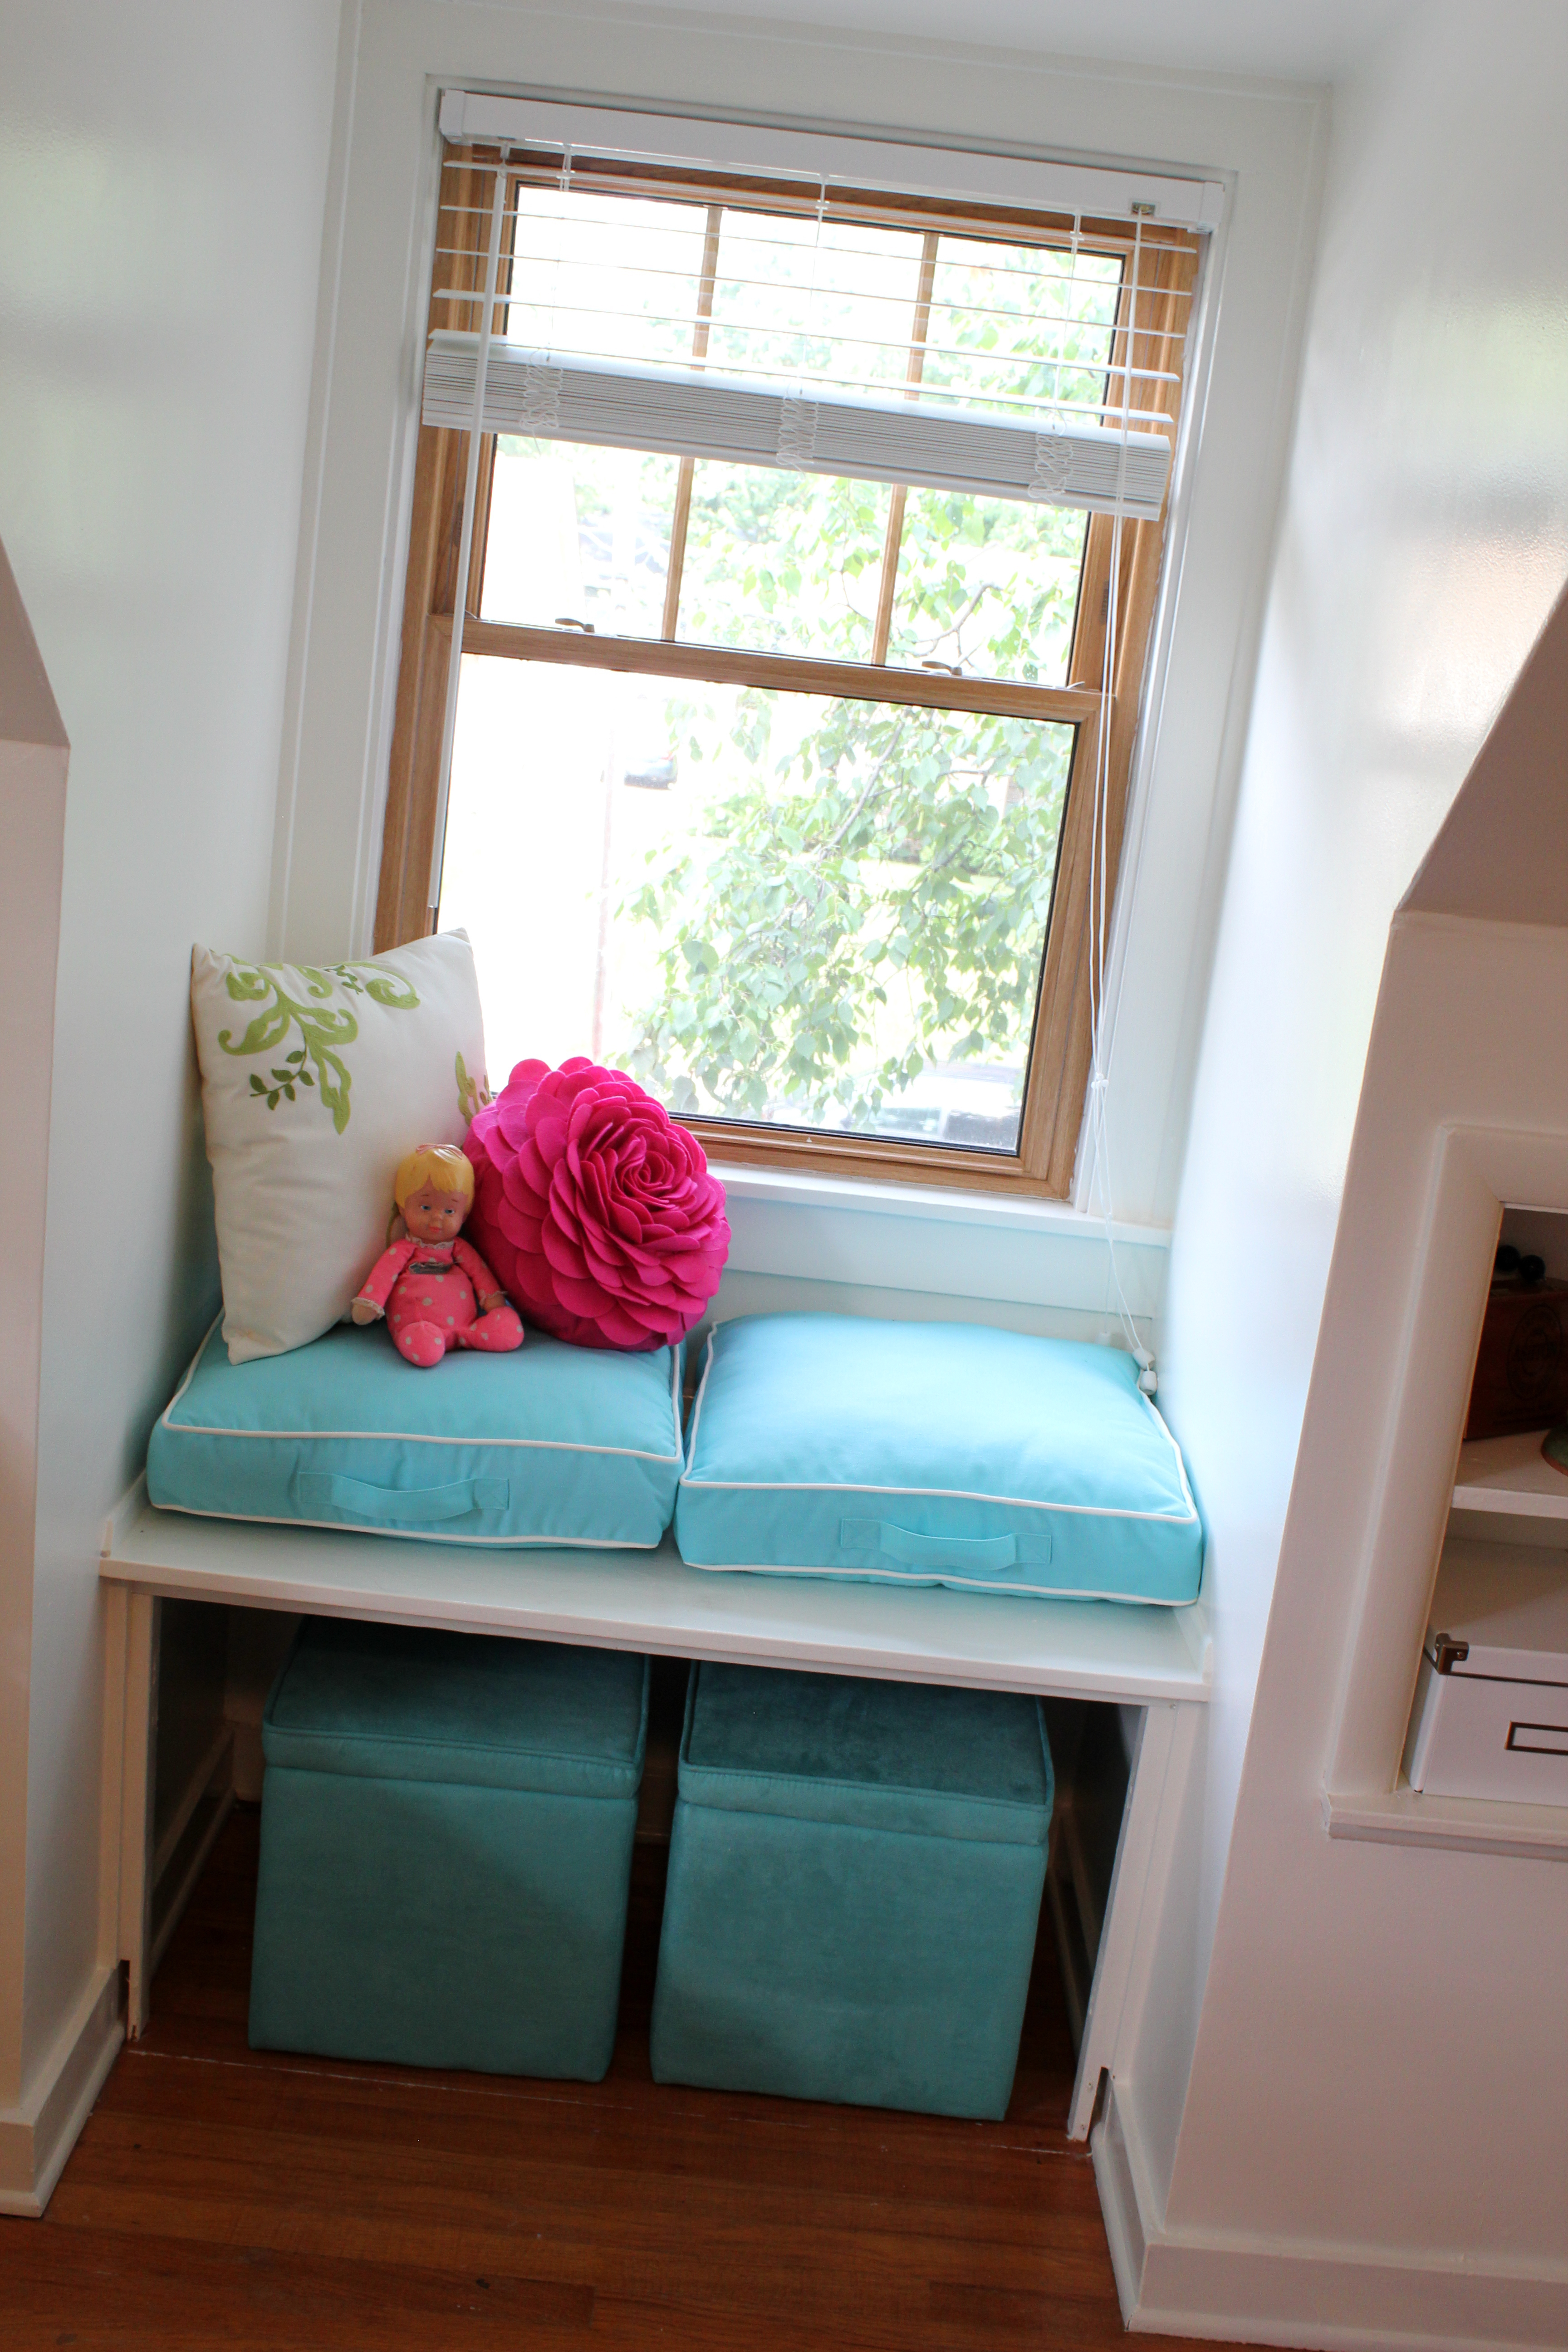 Room Decor: Home Decor: Guest Room & Craft Space